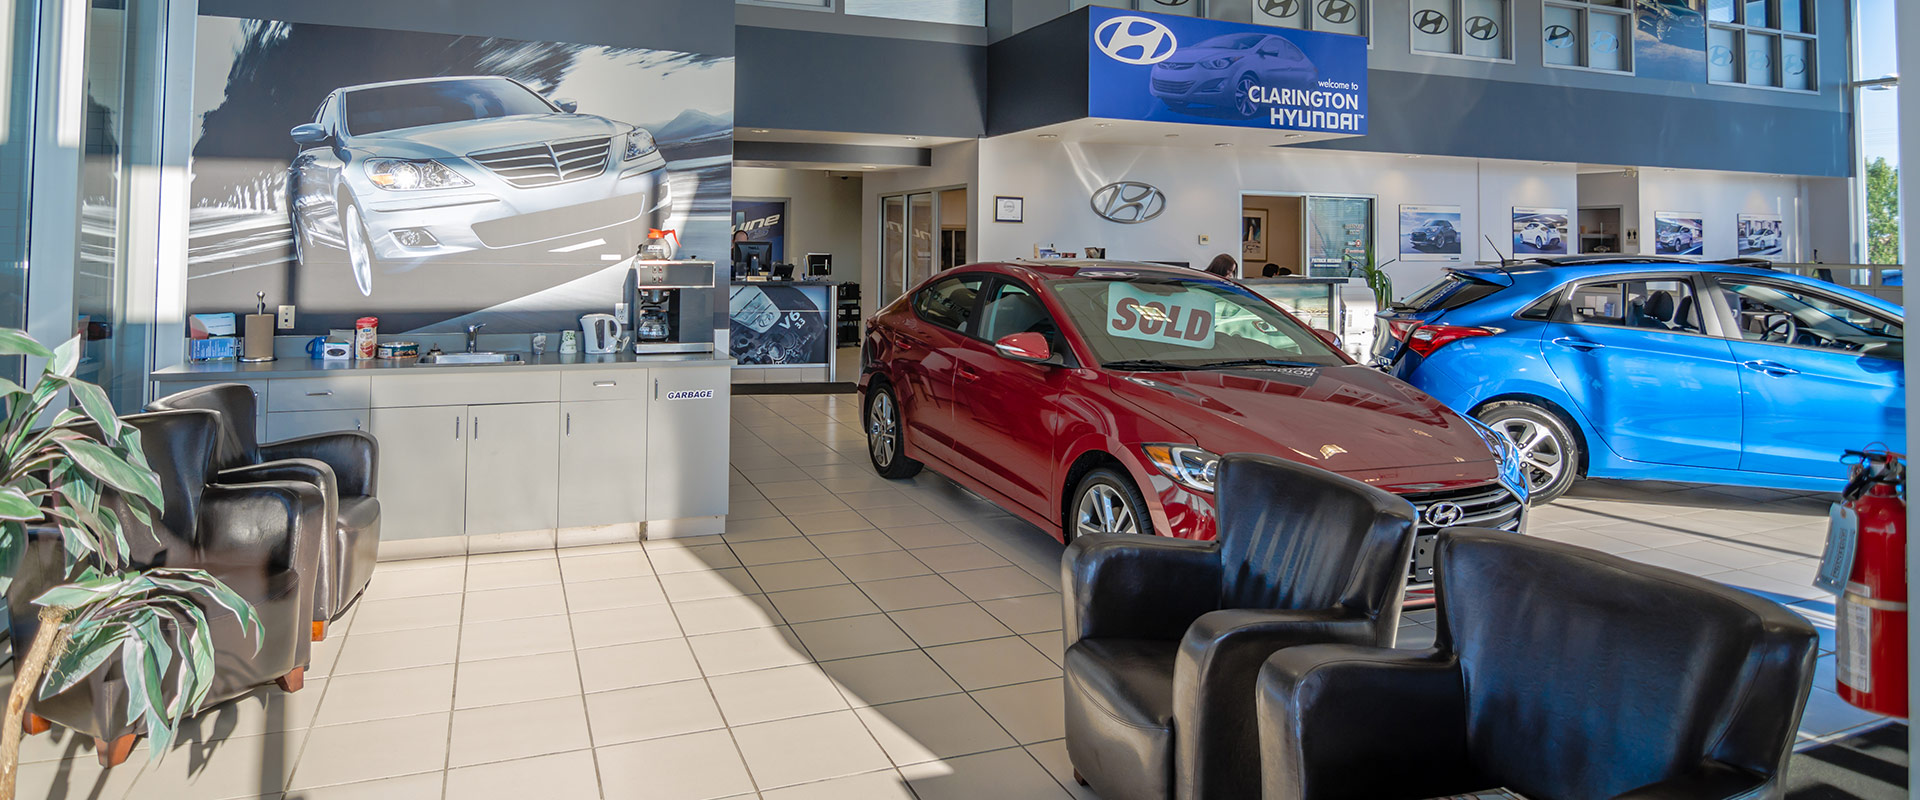 Clarington Hyundai Showroom 1